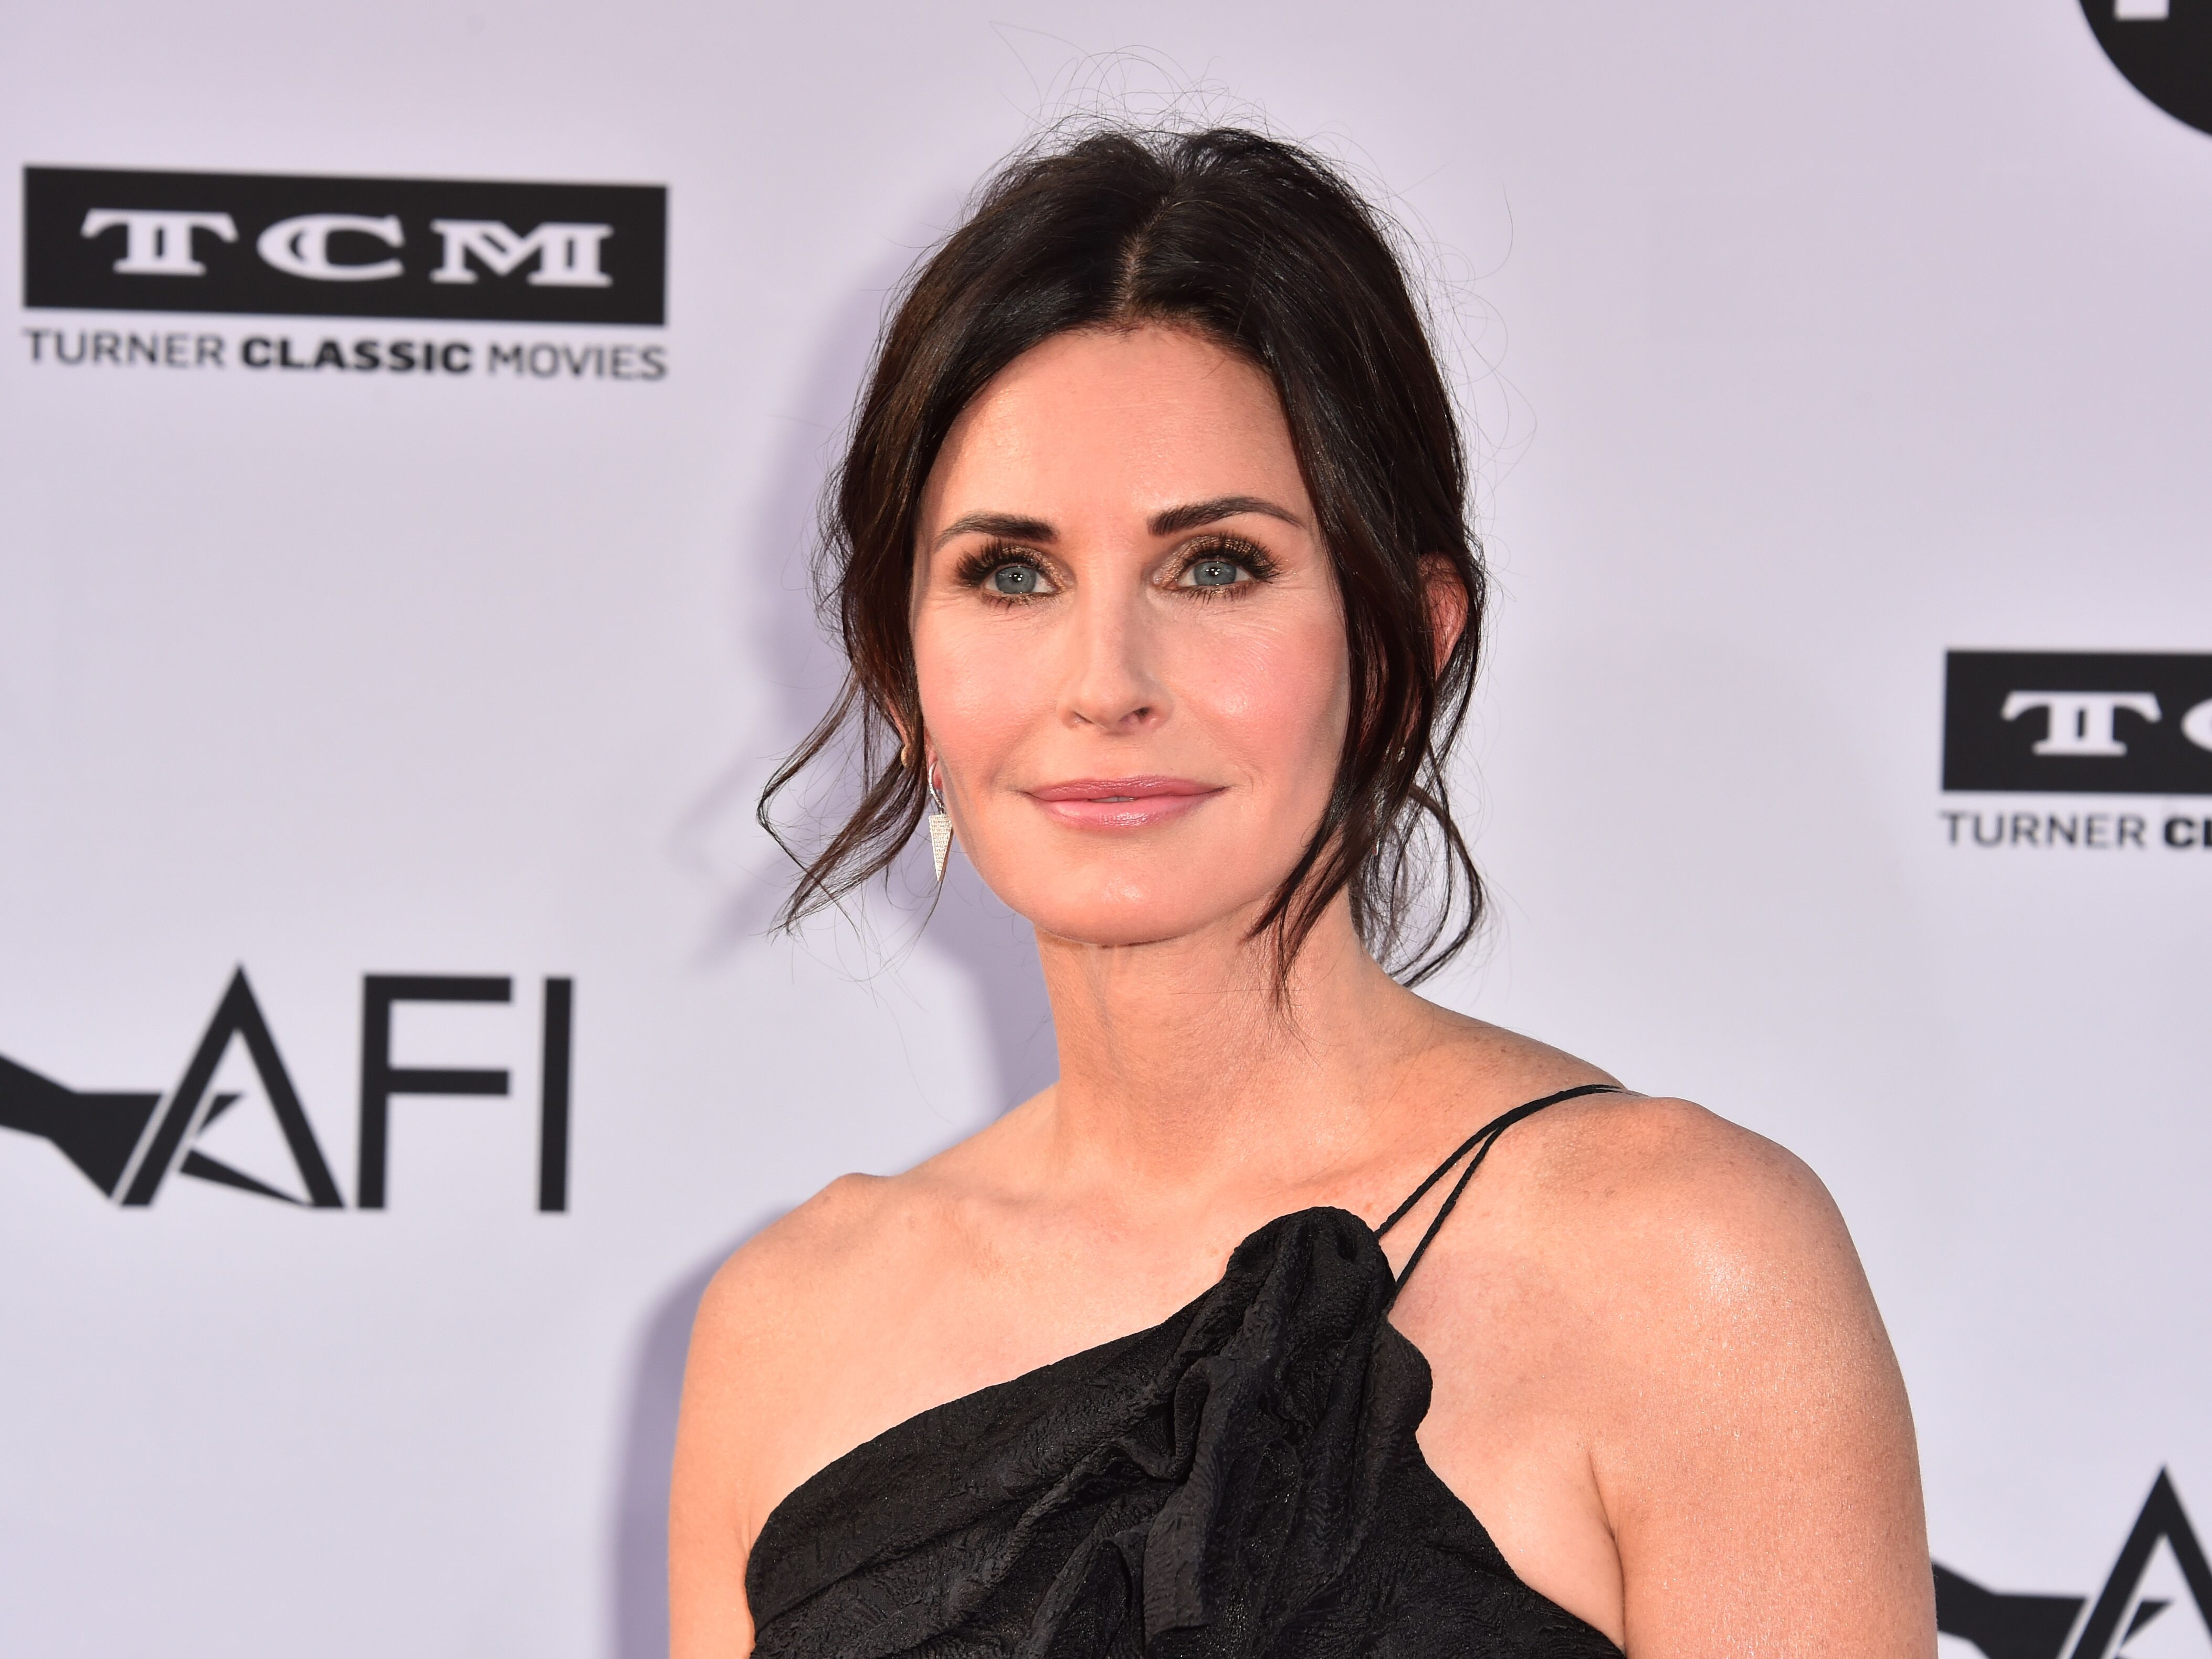 Courteney Cox attends American Film Institute's 46th Life Achievement Award Gala Tribute to George Clooney at Dolby Theatre. | Photo: Getty Images